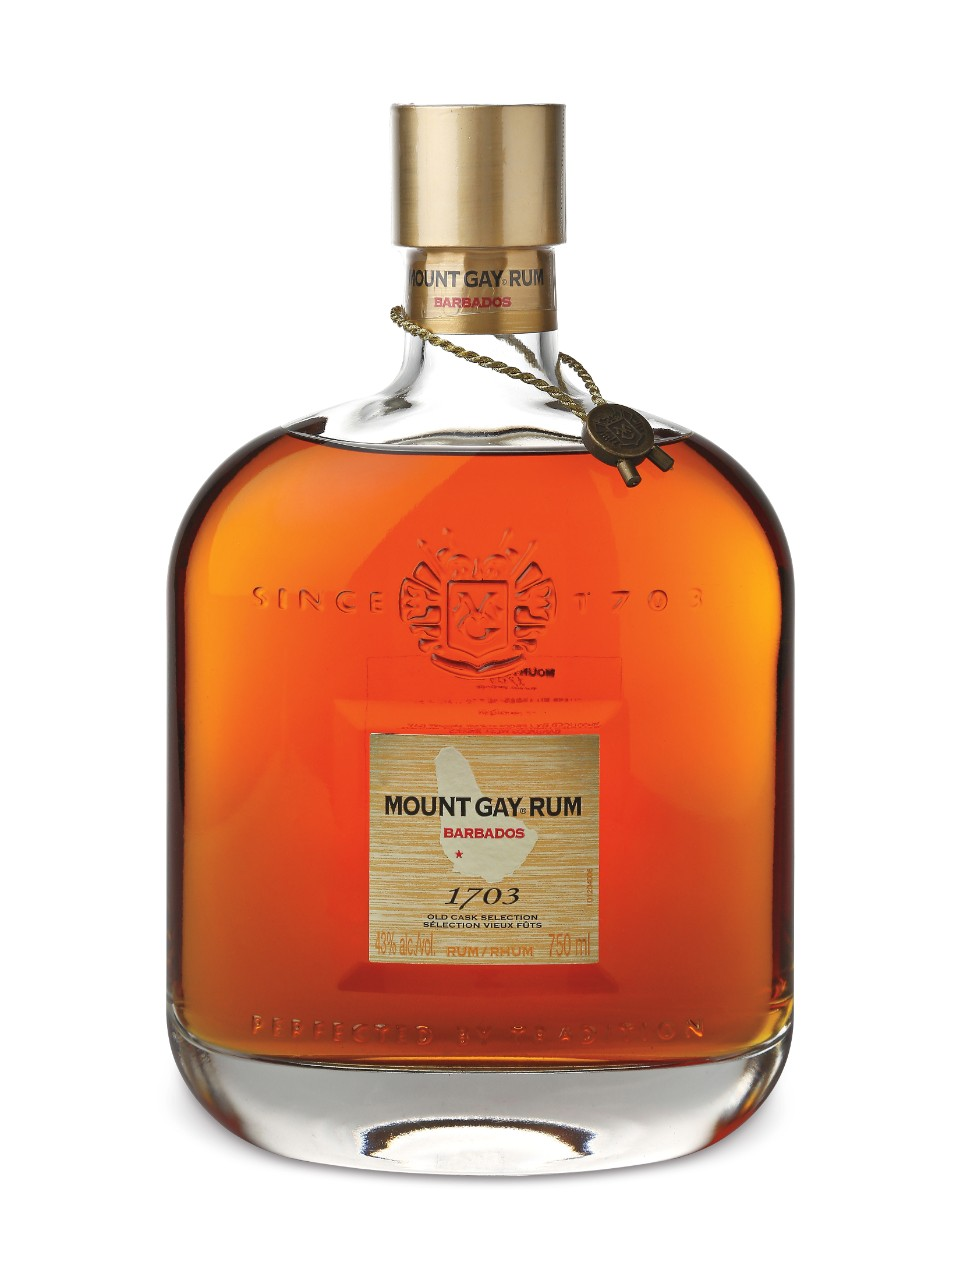 mount gay rum 1703 Mount Gay Distilleries and Historical Mount Gay Plantation Unite - EAT LOVE SAVOR International luxury lifestyle magazine and bookazines